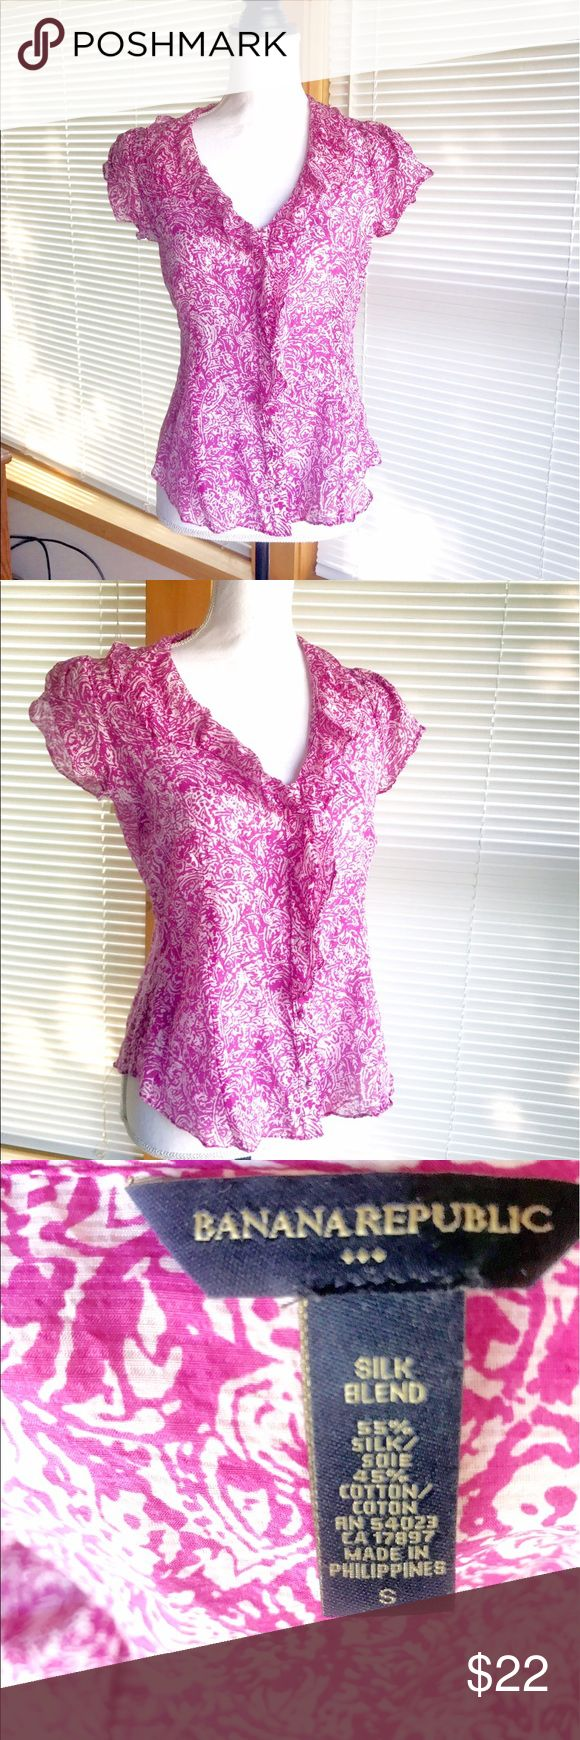 Banana Republic sheer short sleeve top size small Banana Republic sheer short sleeve top, size small. Pink and white pattern, with flutter sleeves, ruffled neckline and button up closure Banana Republic Tops